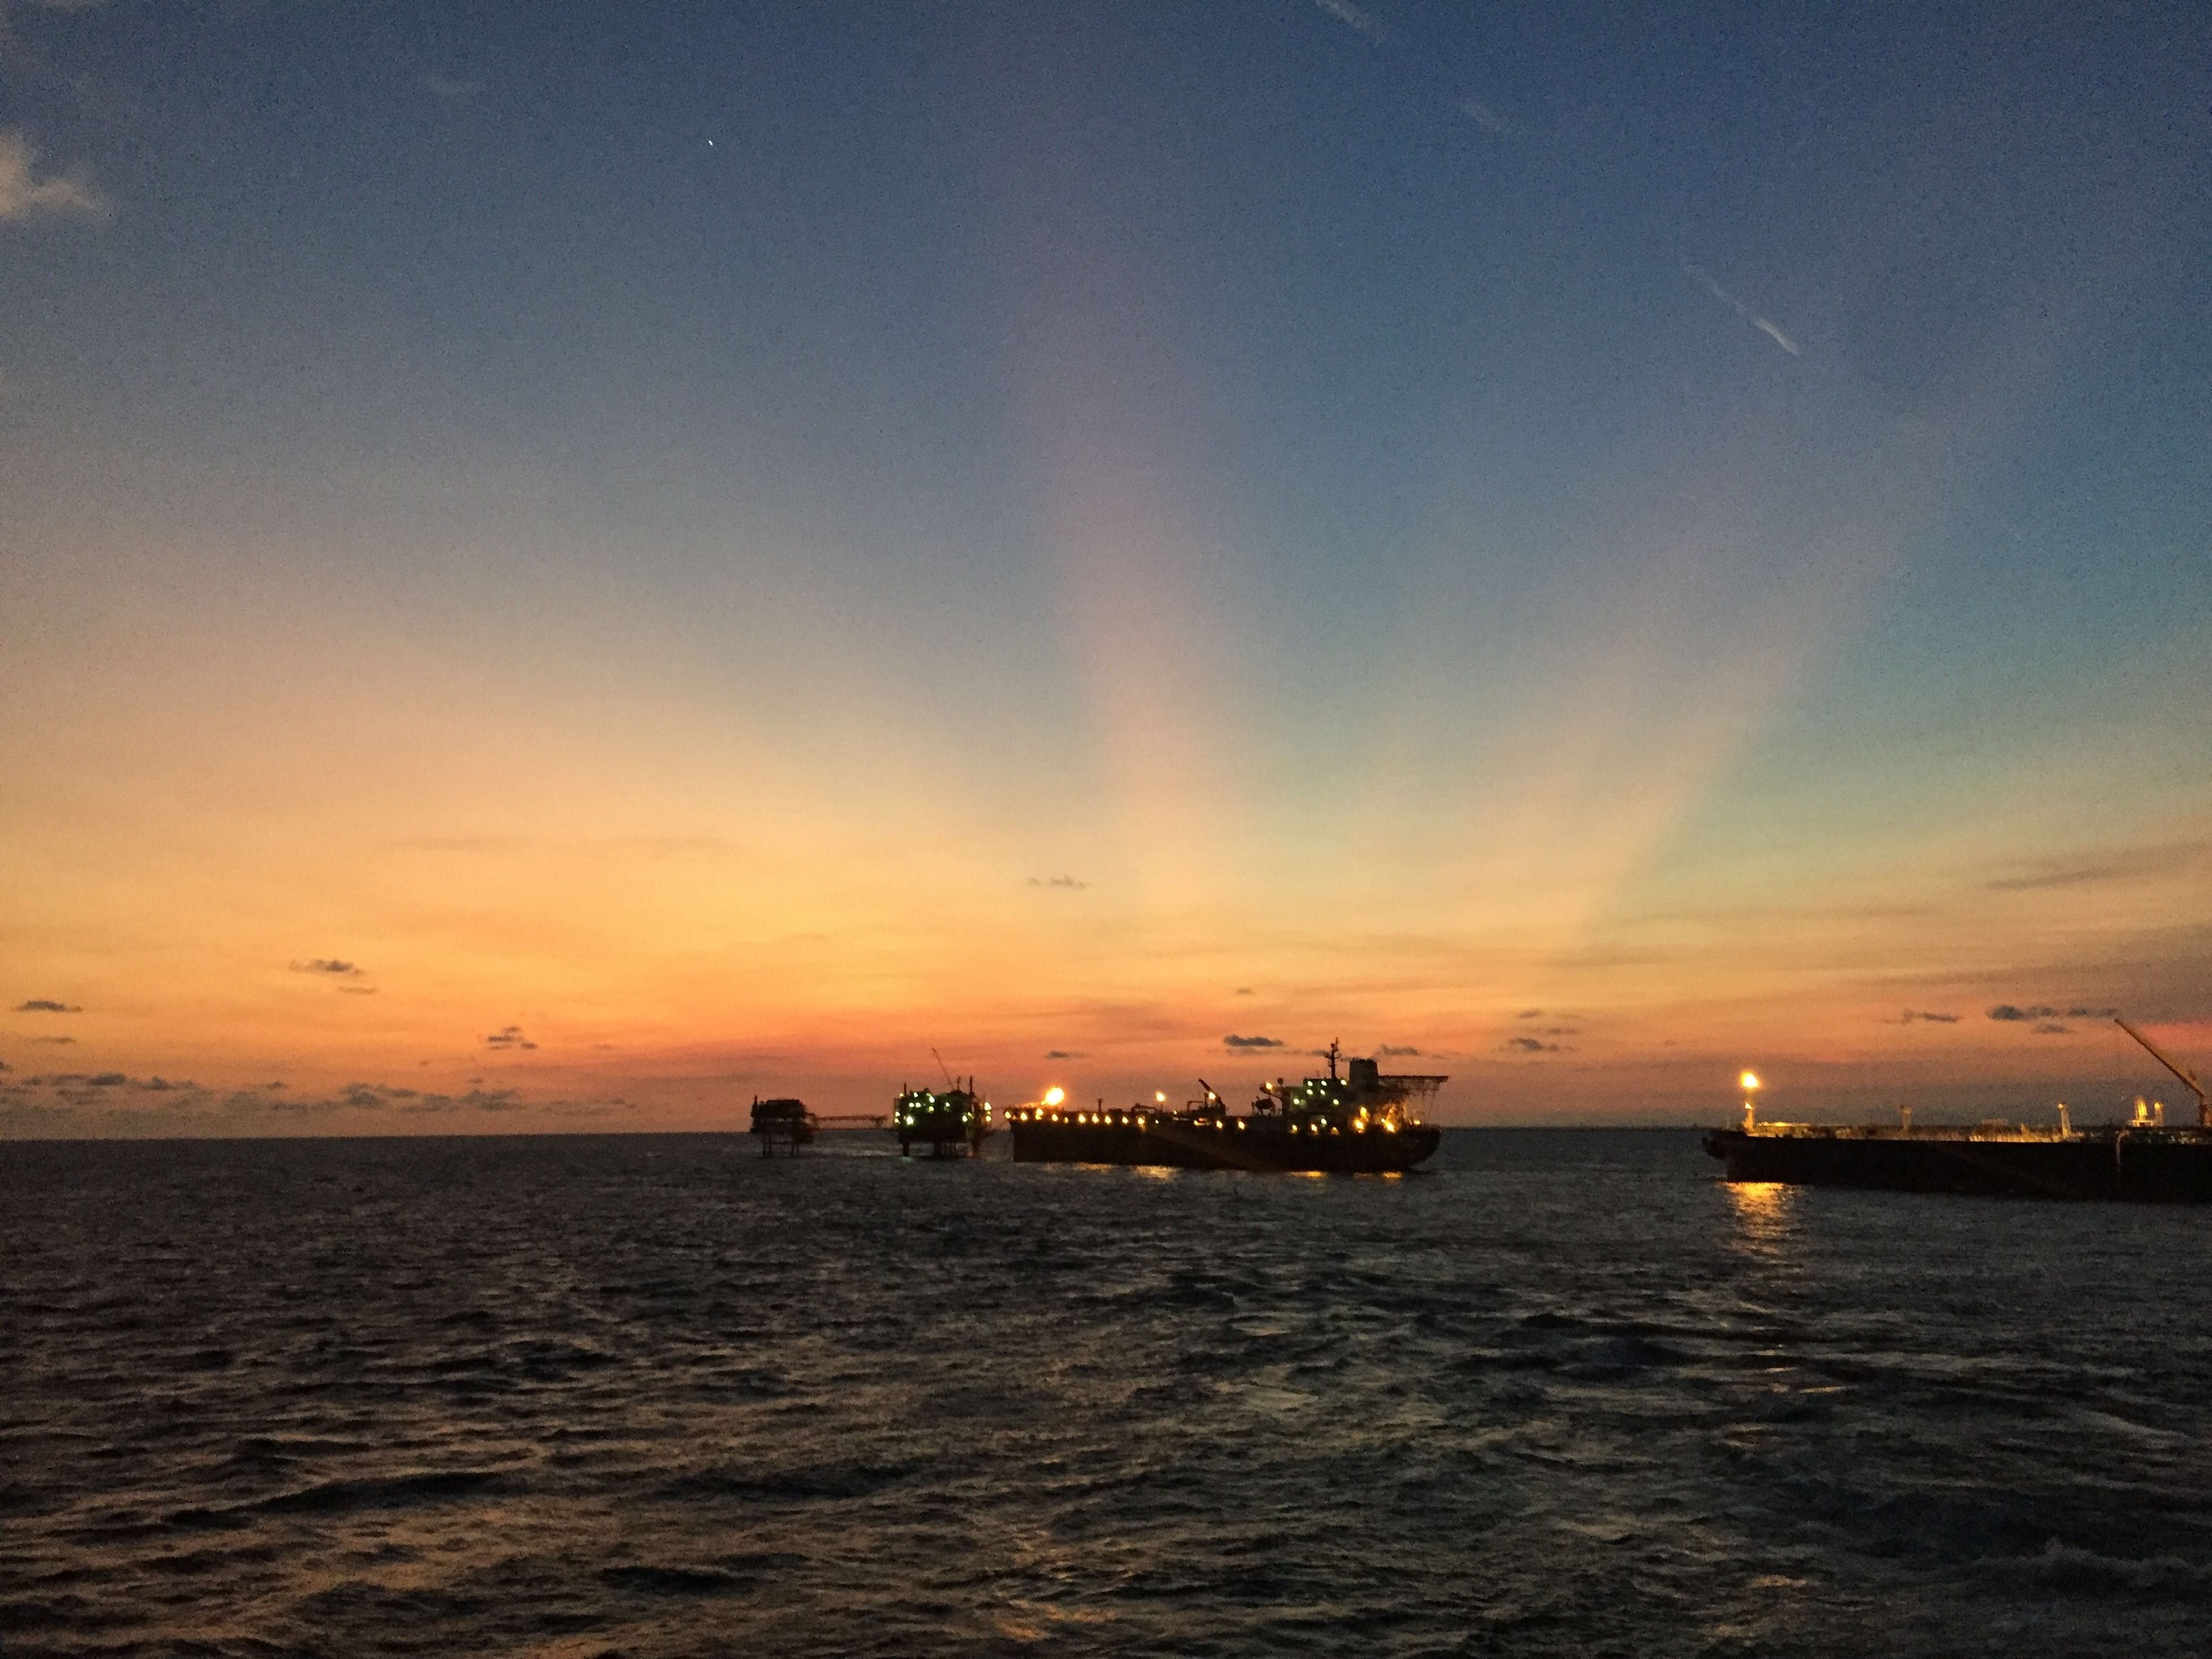 sea, sunset, water, beauty in nature, tranquility, business finance and industry, nautical vessel, scenics, nature, outdoors, horizon over water, sky, no people, offshore platform, day